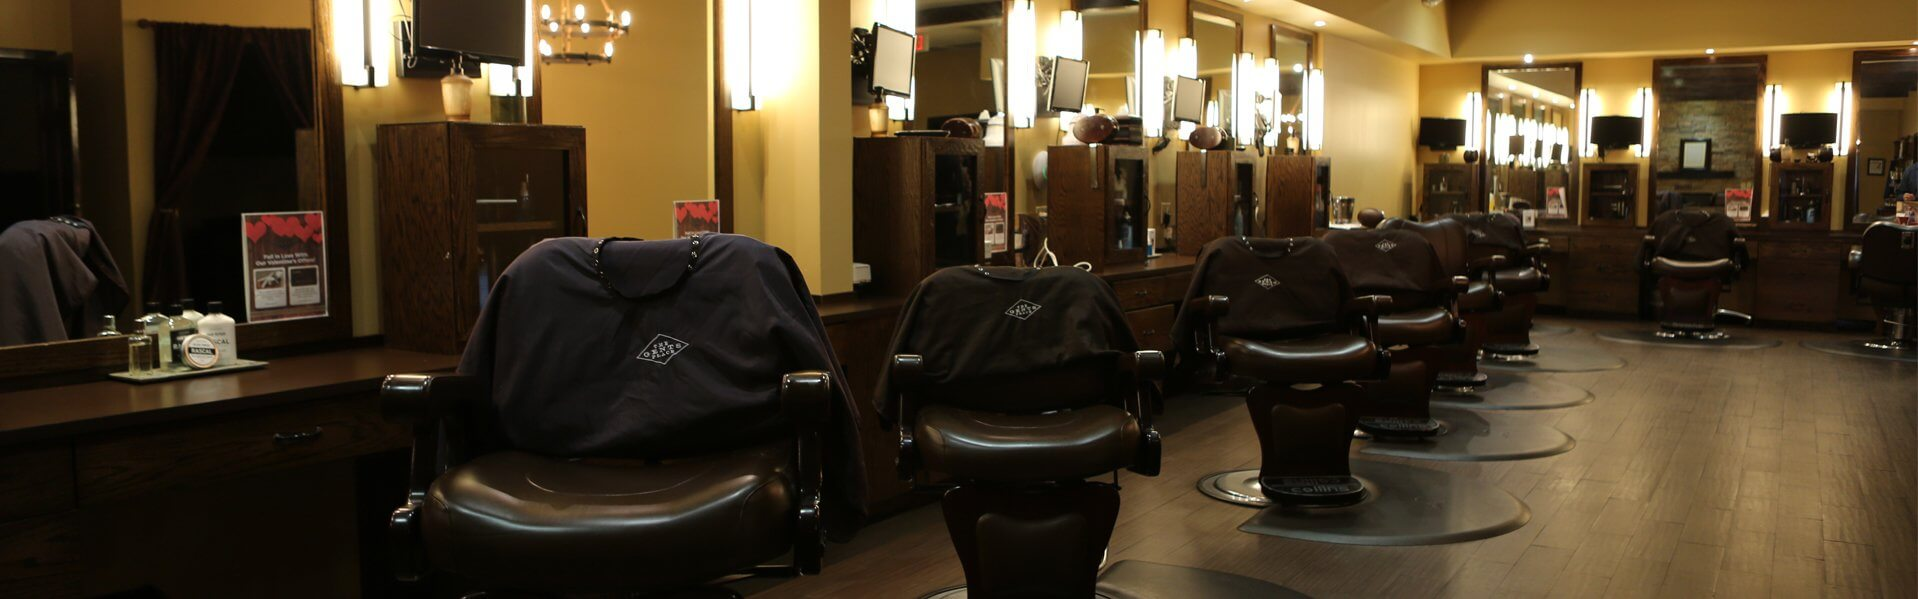 Page Banner - The Gents Place Mens Haircuts Near Me and Barber Shop in Dallas TX - Preston Hollow